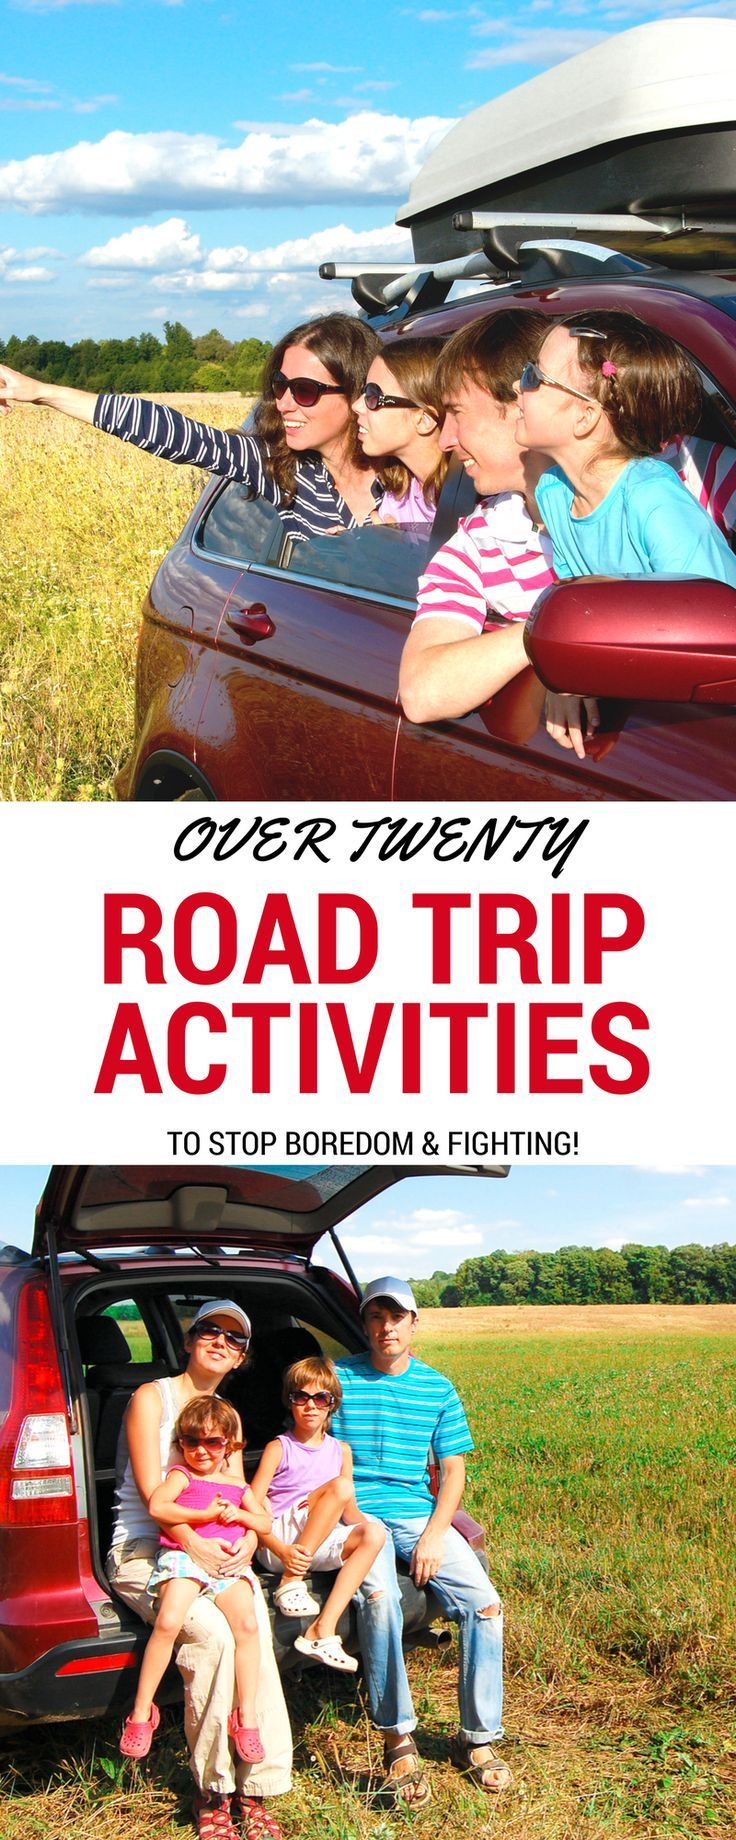 These printable game and education worksheets make your next family trip more exciting!